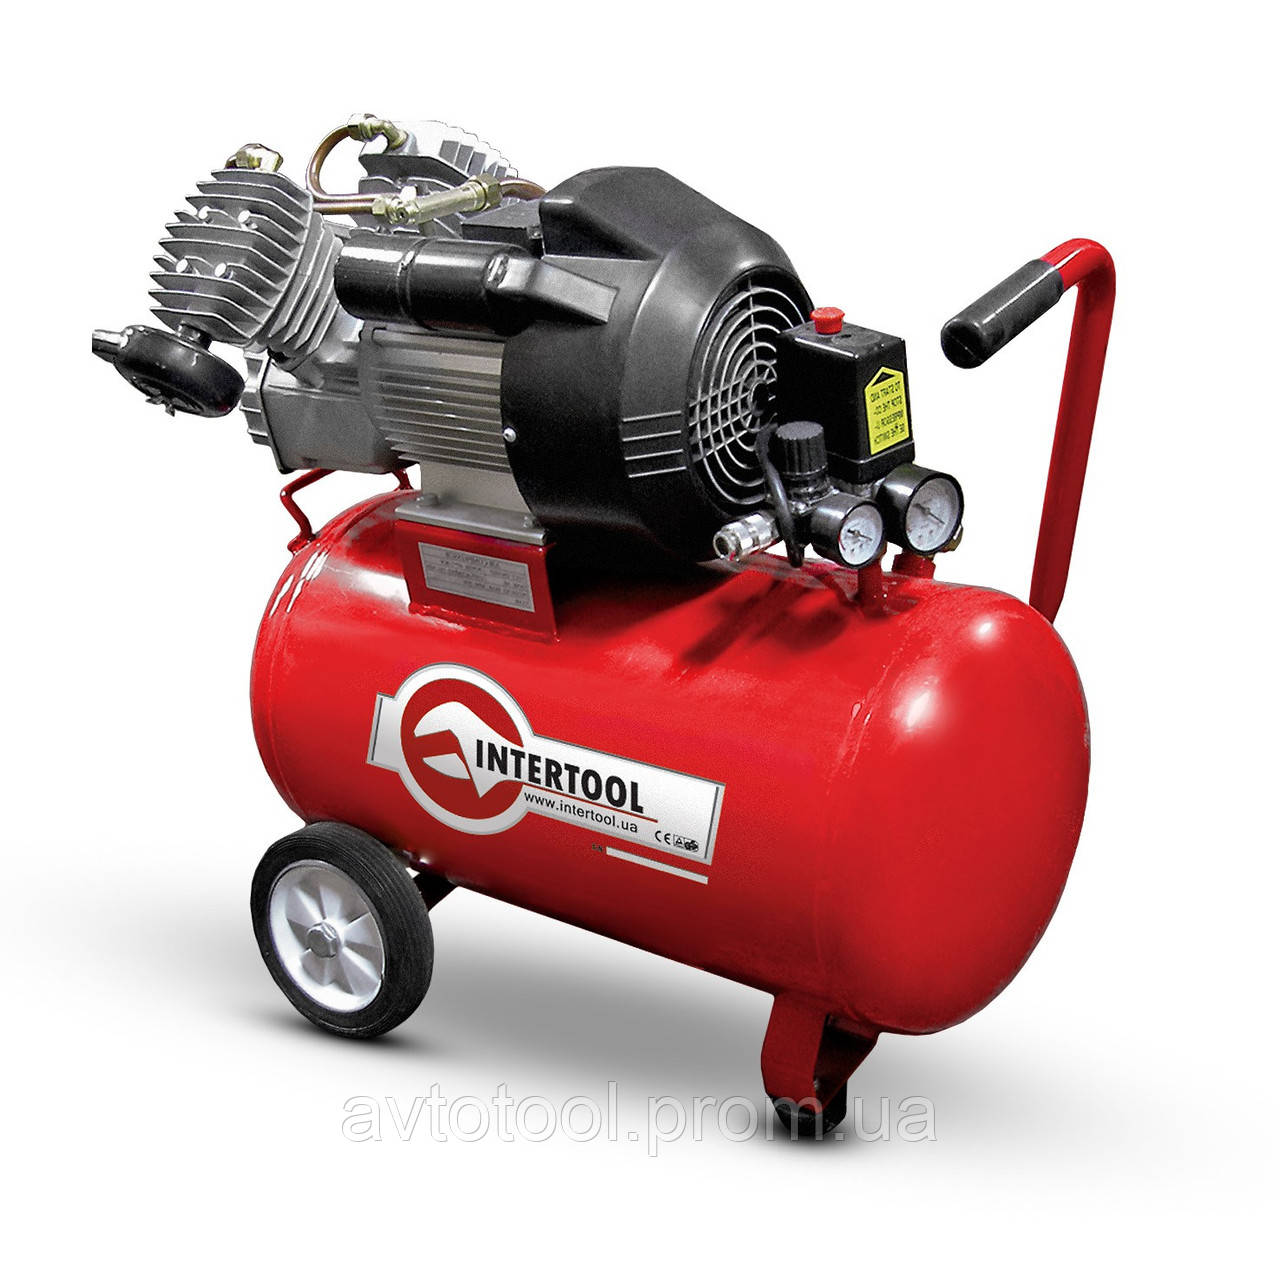 Компрессор 50л, 4HP, 3кВт, 220В, 8атм, 420л/мин, 2 цилиндр. (PT-0007 Intertool)